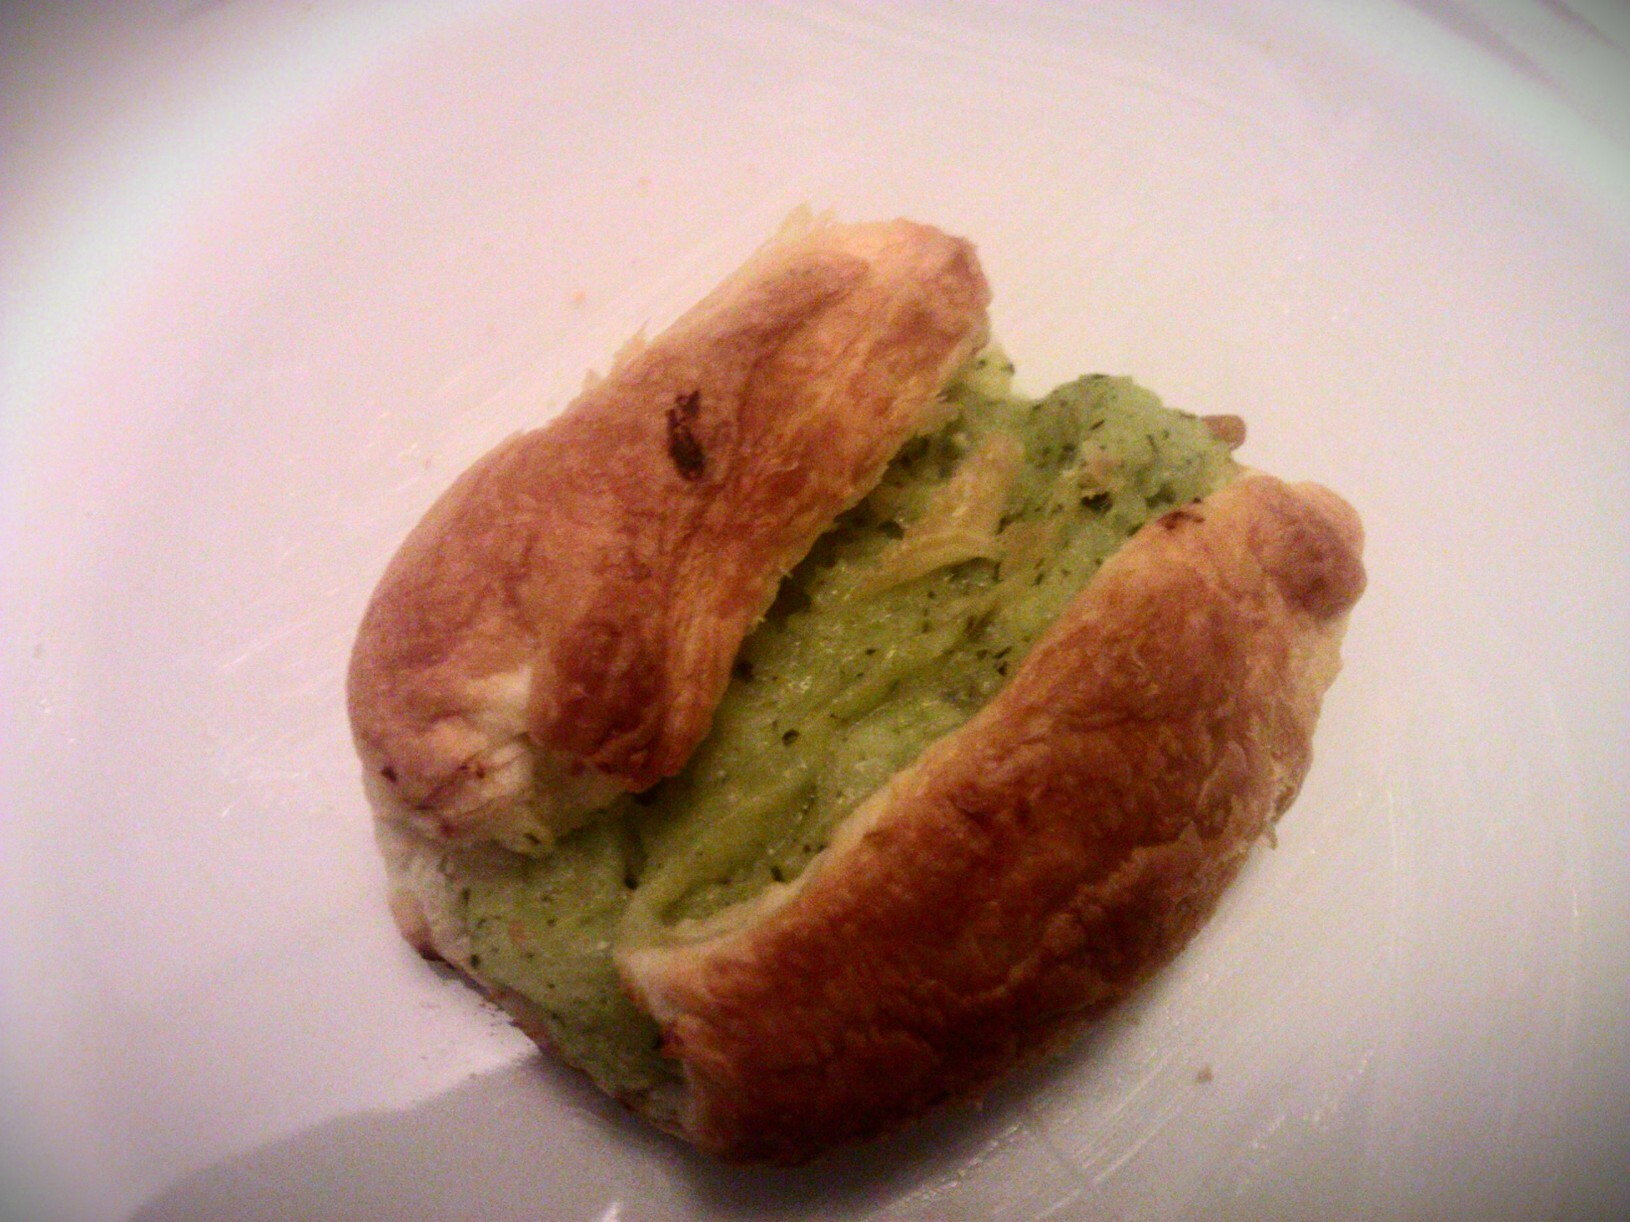 Pesto knish